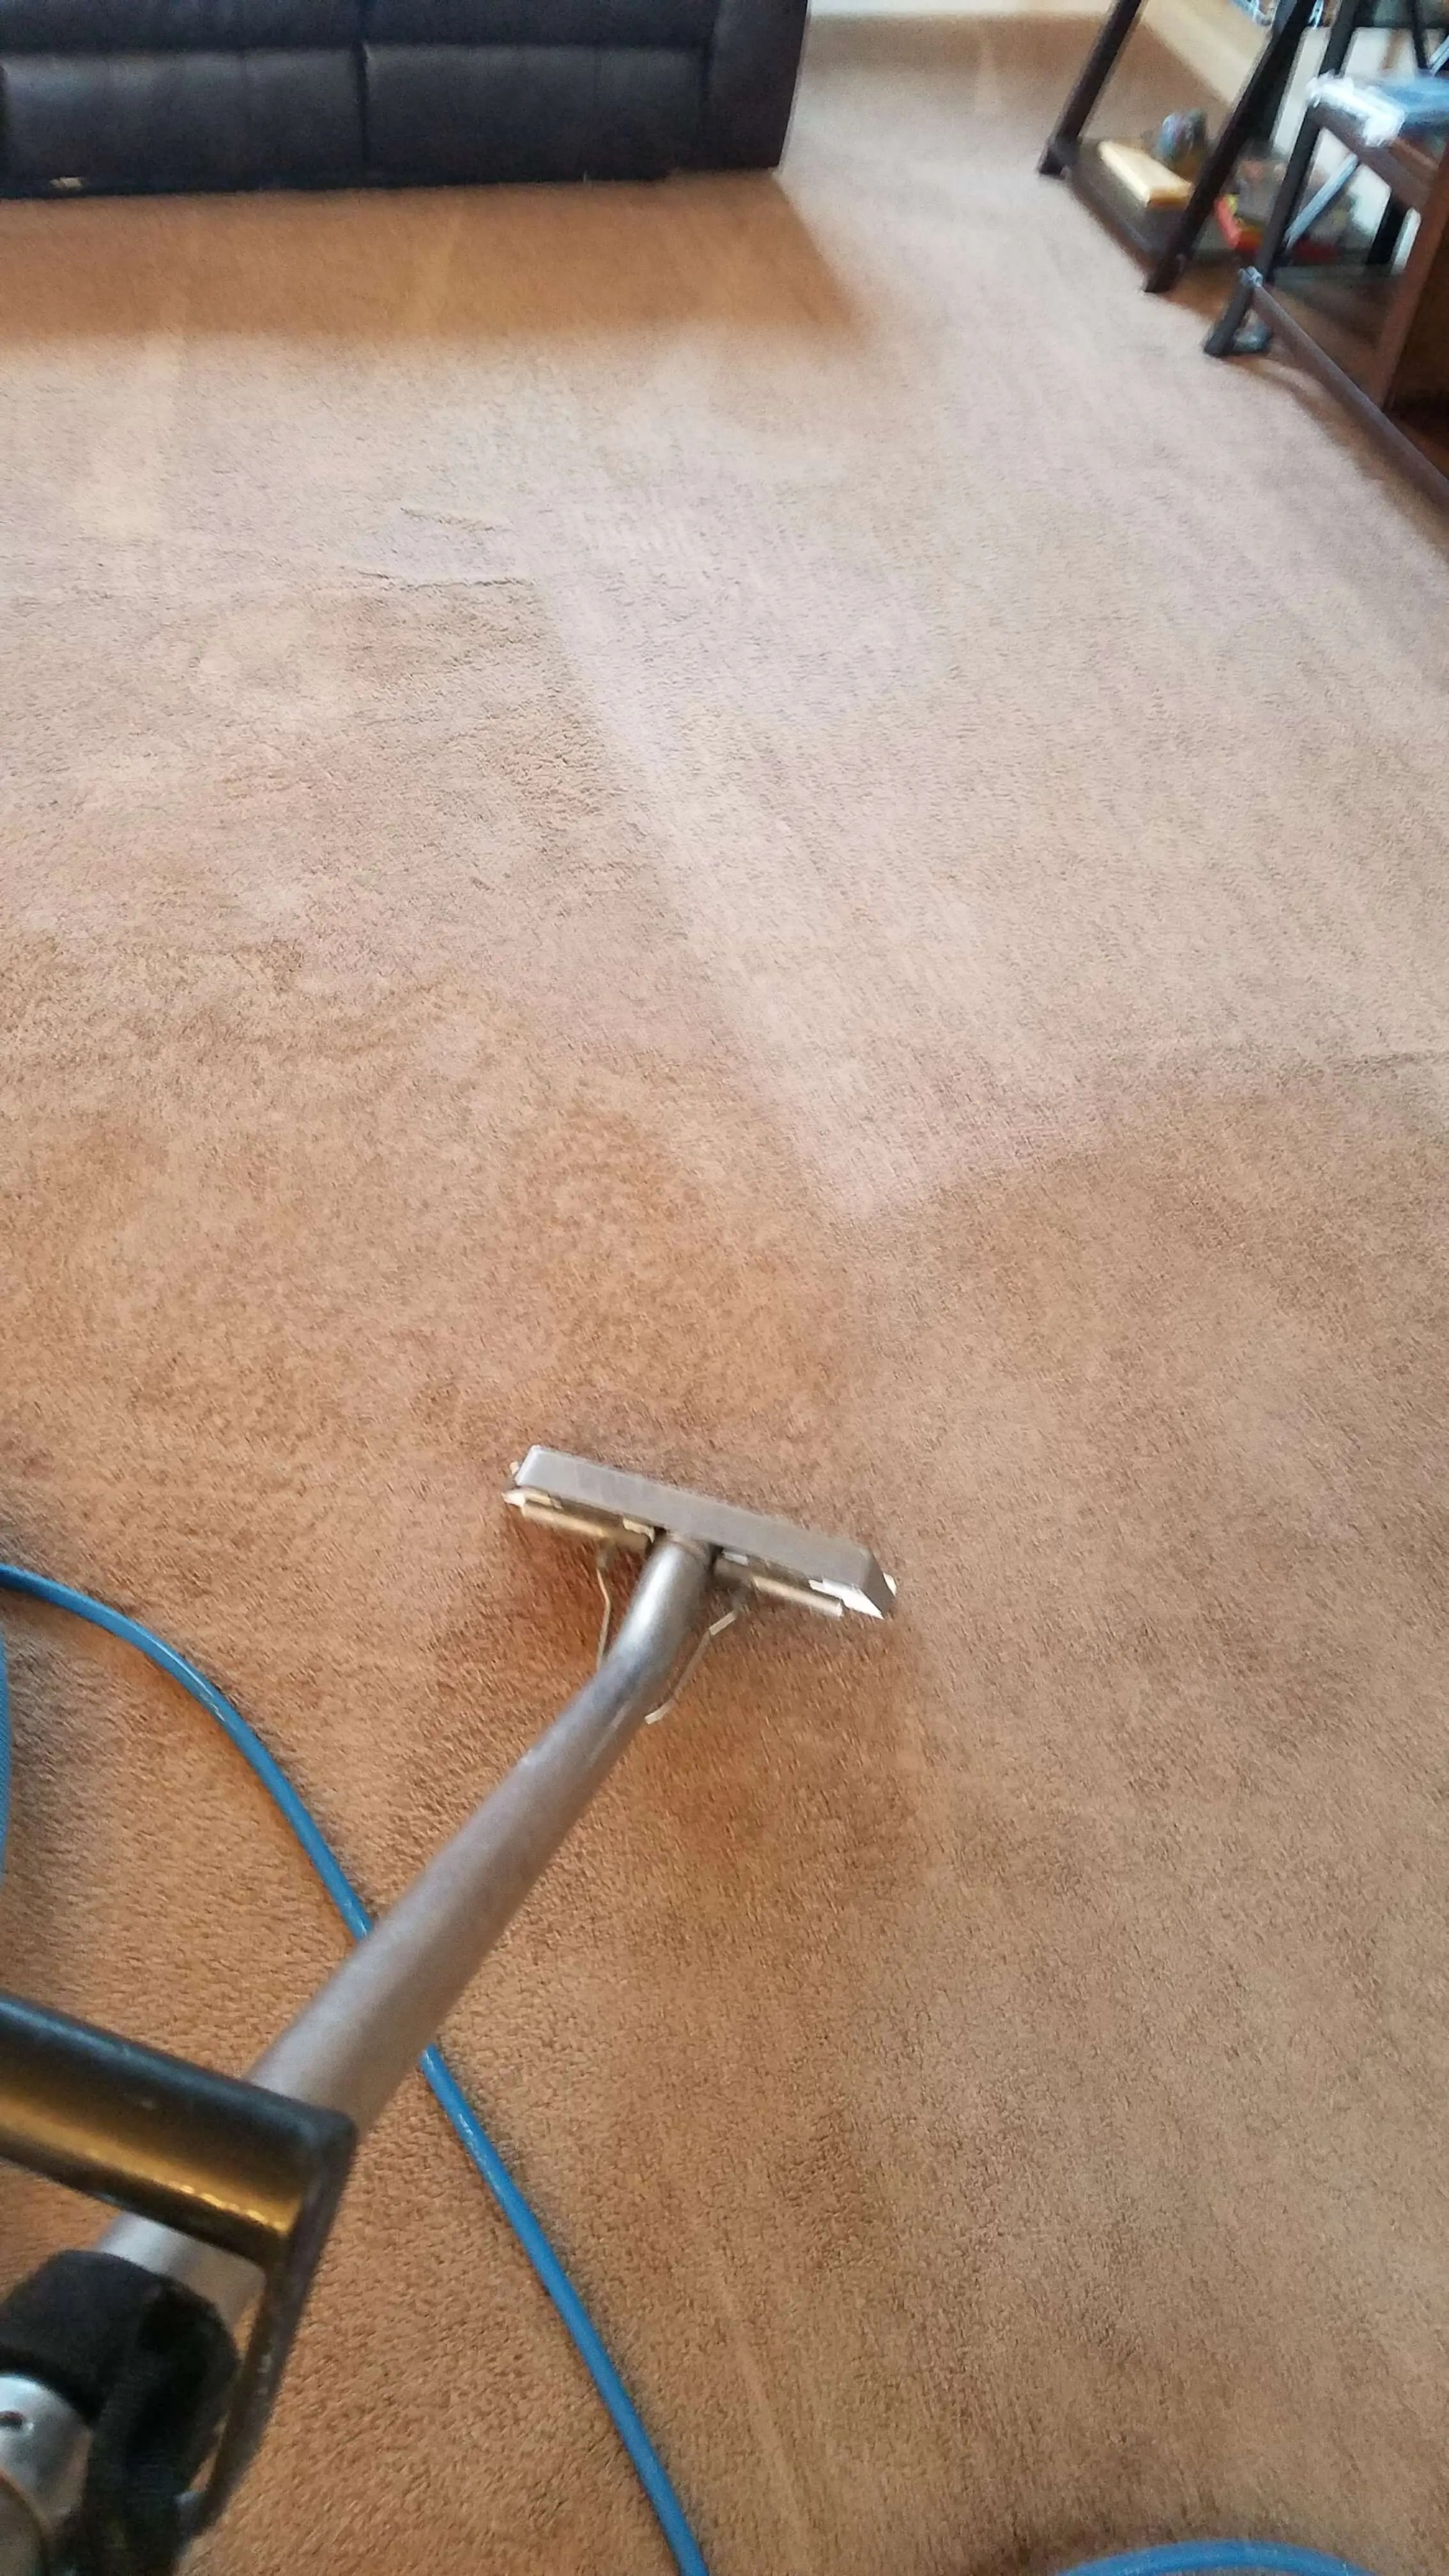 Carpet Cleaning Best Carpet Cleaning Company In Corvallis Albany Oregon